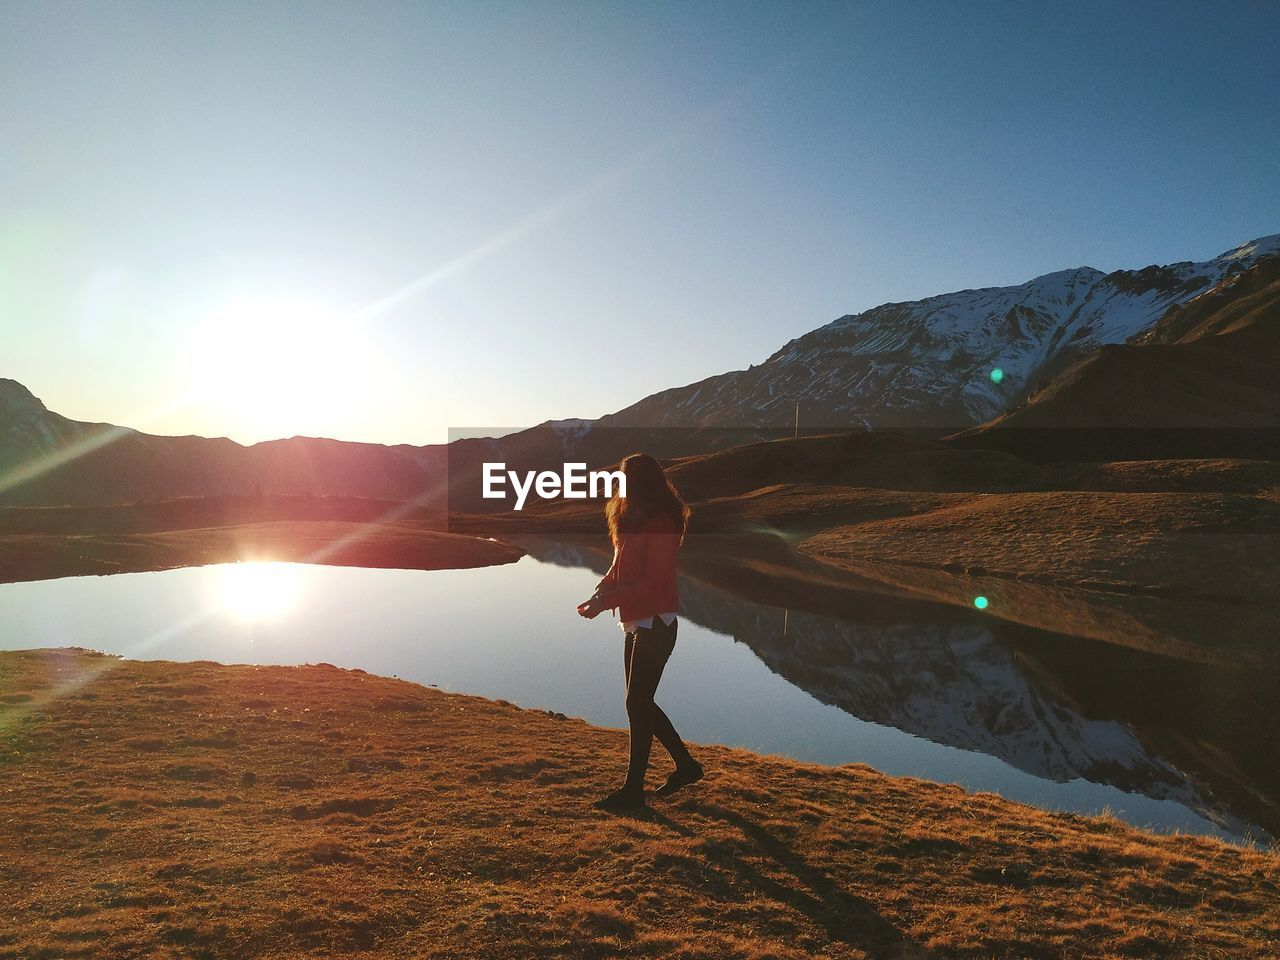 sky, mountain, beauty in nature, real people, one person, water, tranquility, lifestyles, leisure activity, sunlight, scenics - nature, tranquil scene, nature, sun, non-urban scene, full length, standing, mountain range, lens flare, outdoors, human arm